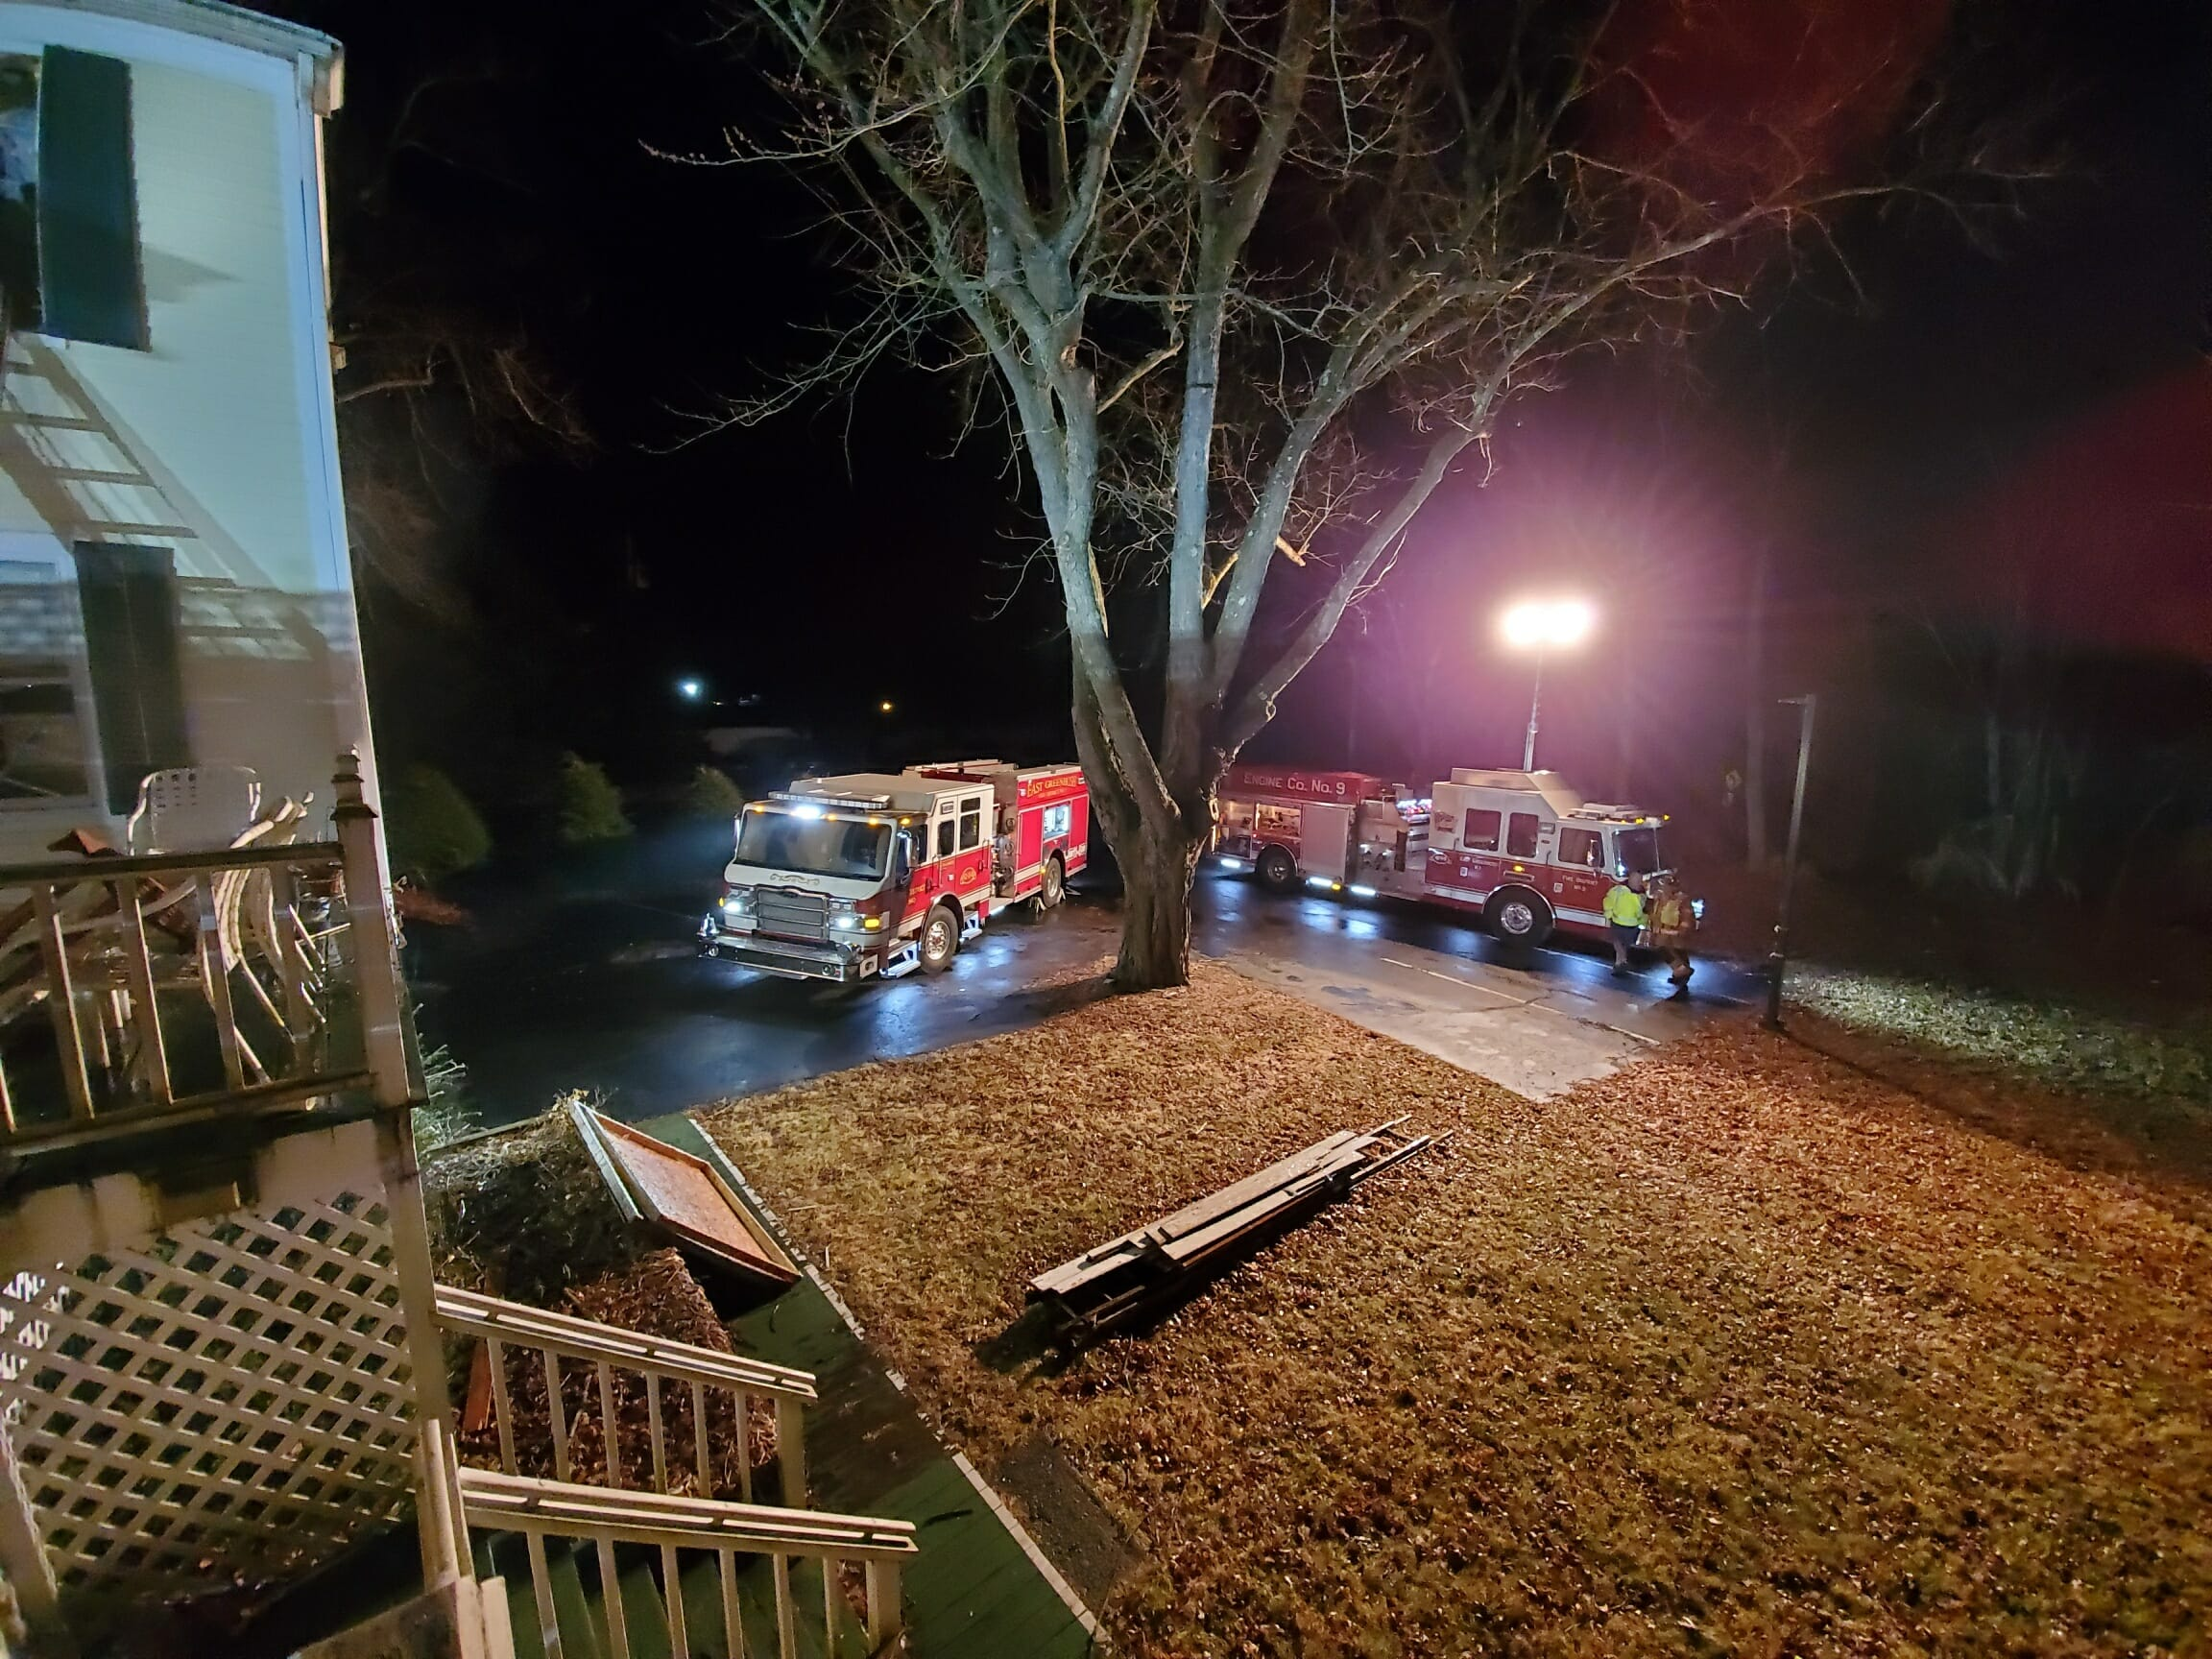 two fire trucks outside at night.